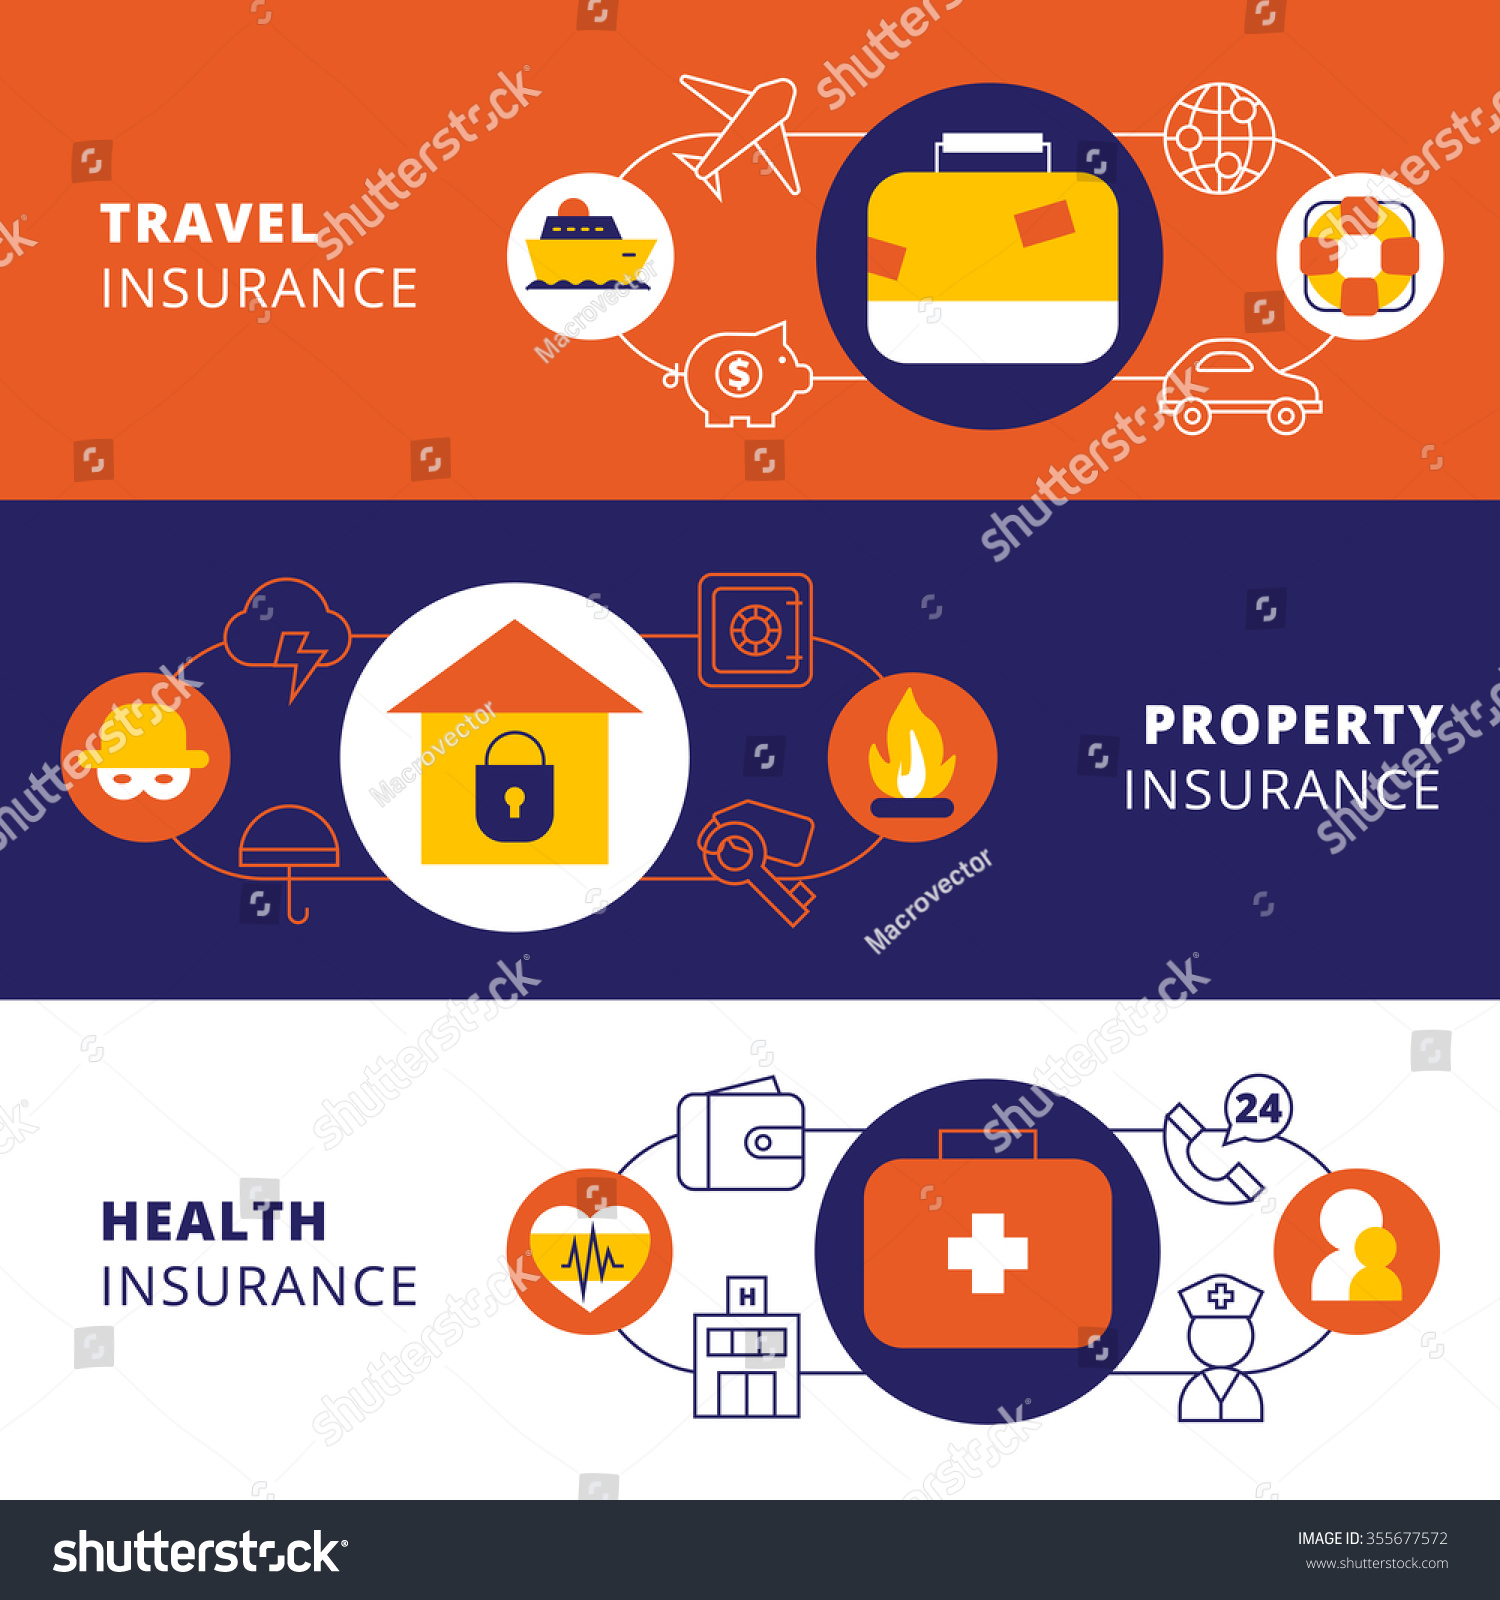 Health Insurance Companies >> Property Travel Cars Health Insurance Companies Stock Vector